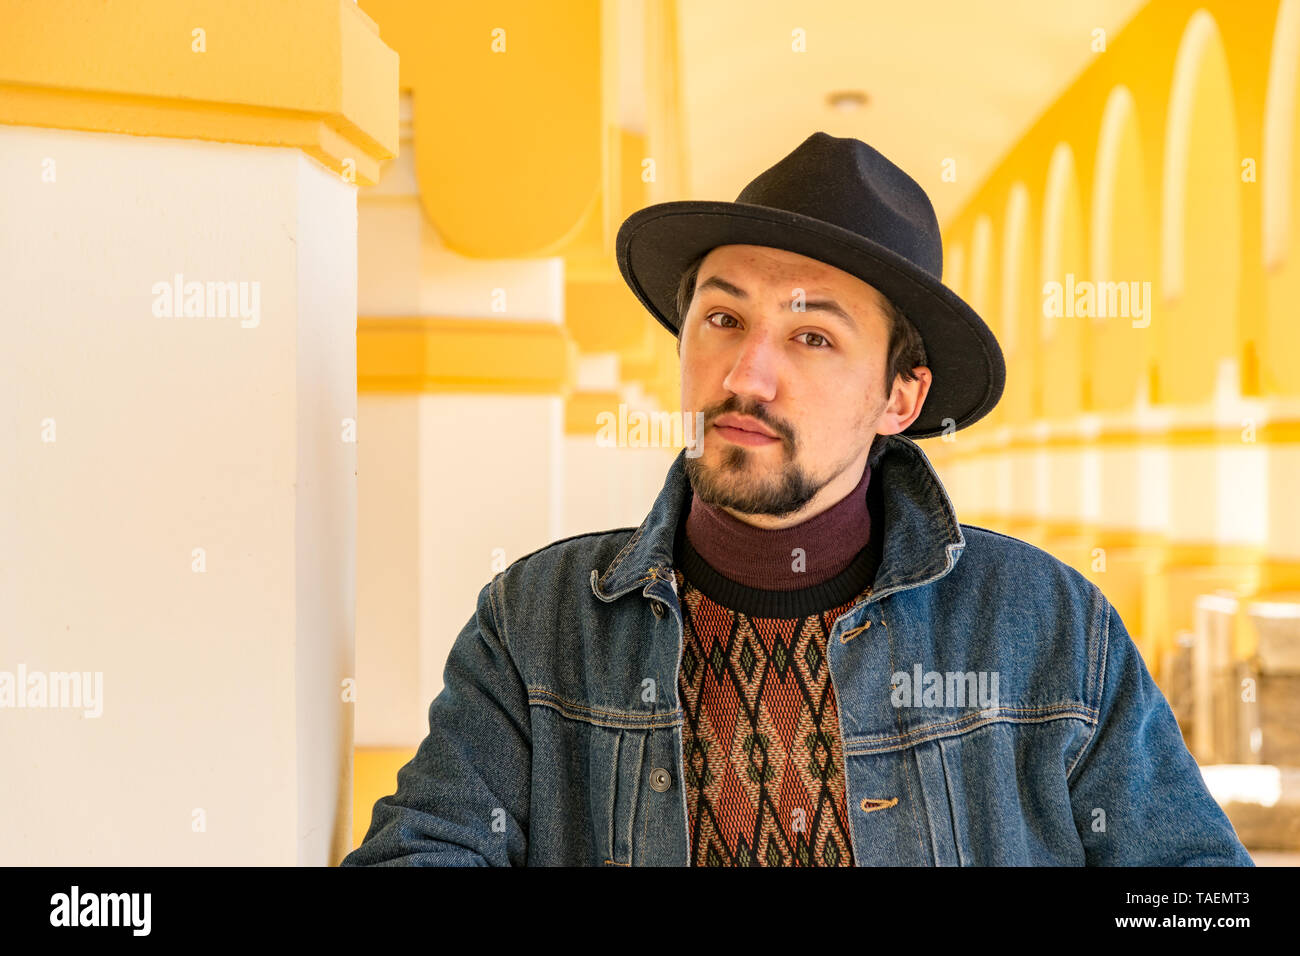 Portrait of a stylish handsome young man with a scarf outdoors.  A serious man wearing a hat and a jaket looking confident at the camera. Stock Photo